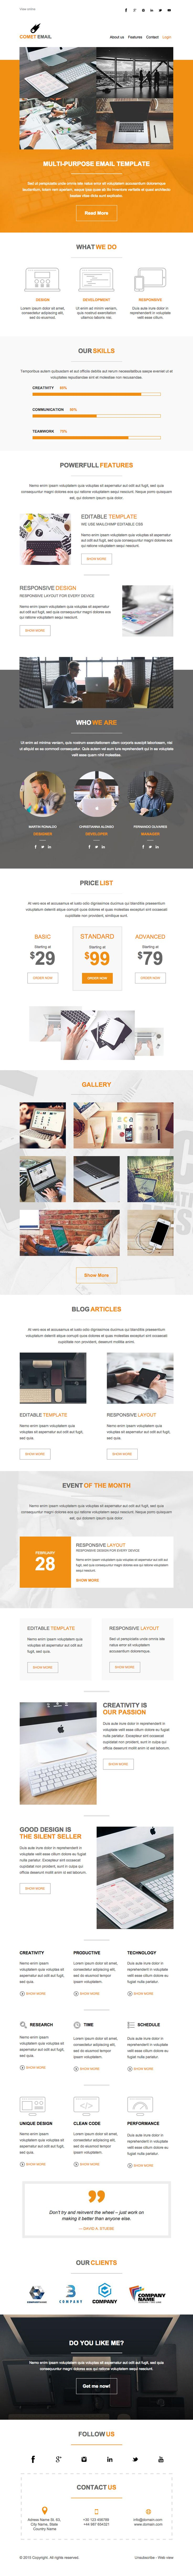 Responsive multipurpose email template for every need. Modern and minimalistic design. Enjoy it!